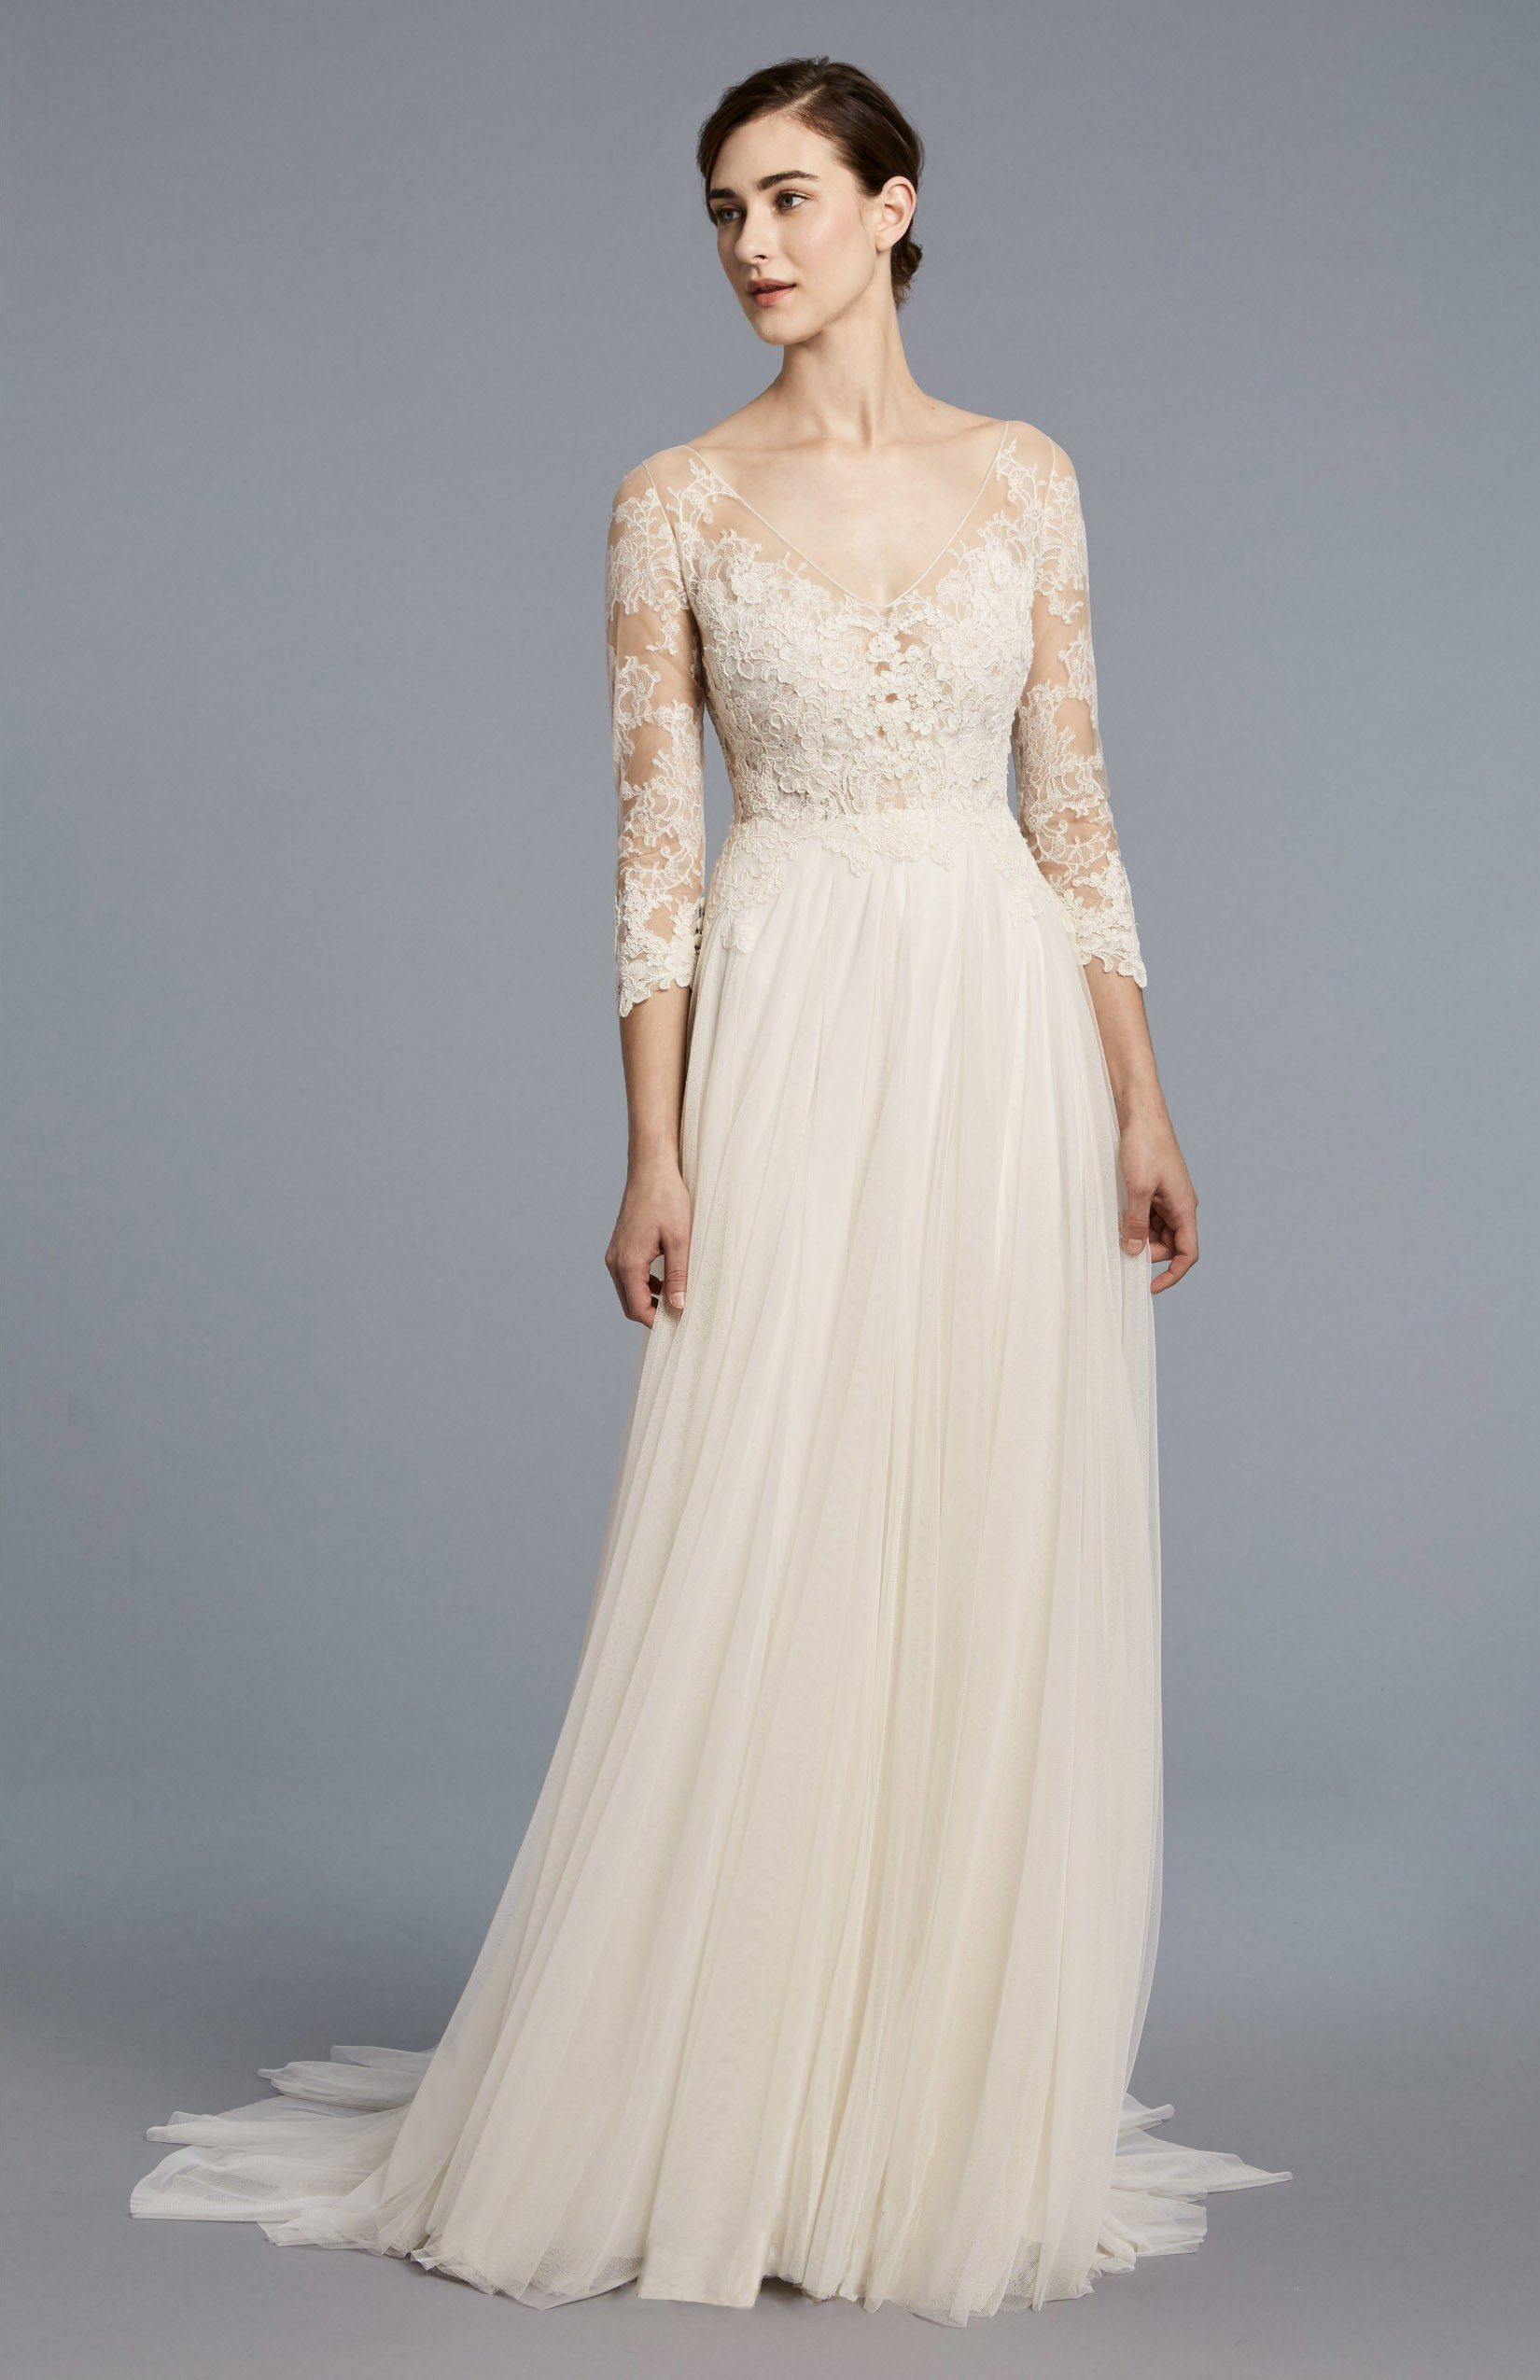 Ethereal Wedding Dresses From Monique Lhuillier To Marchesa Perfect For Brides